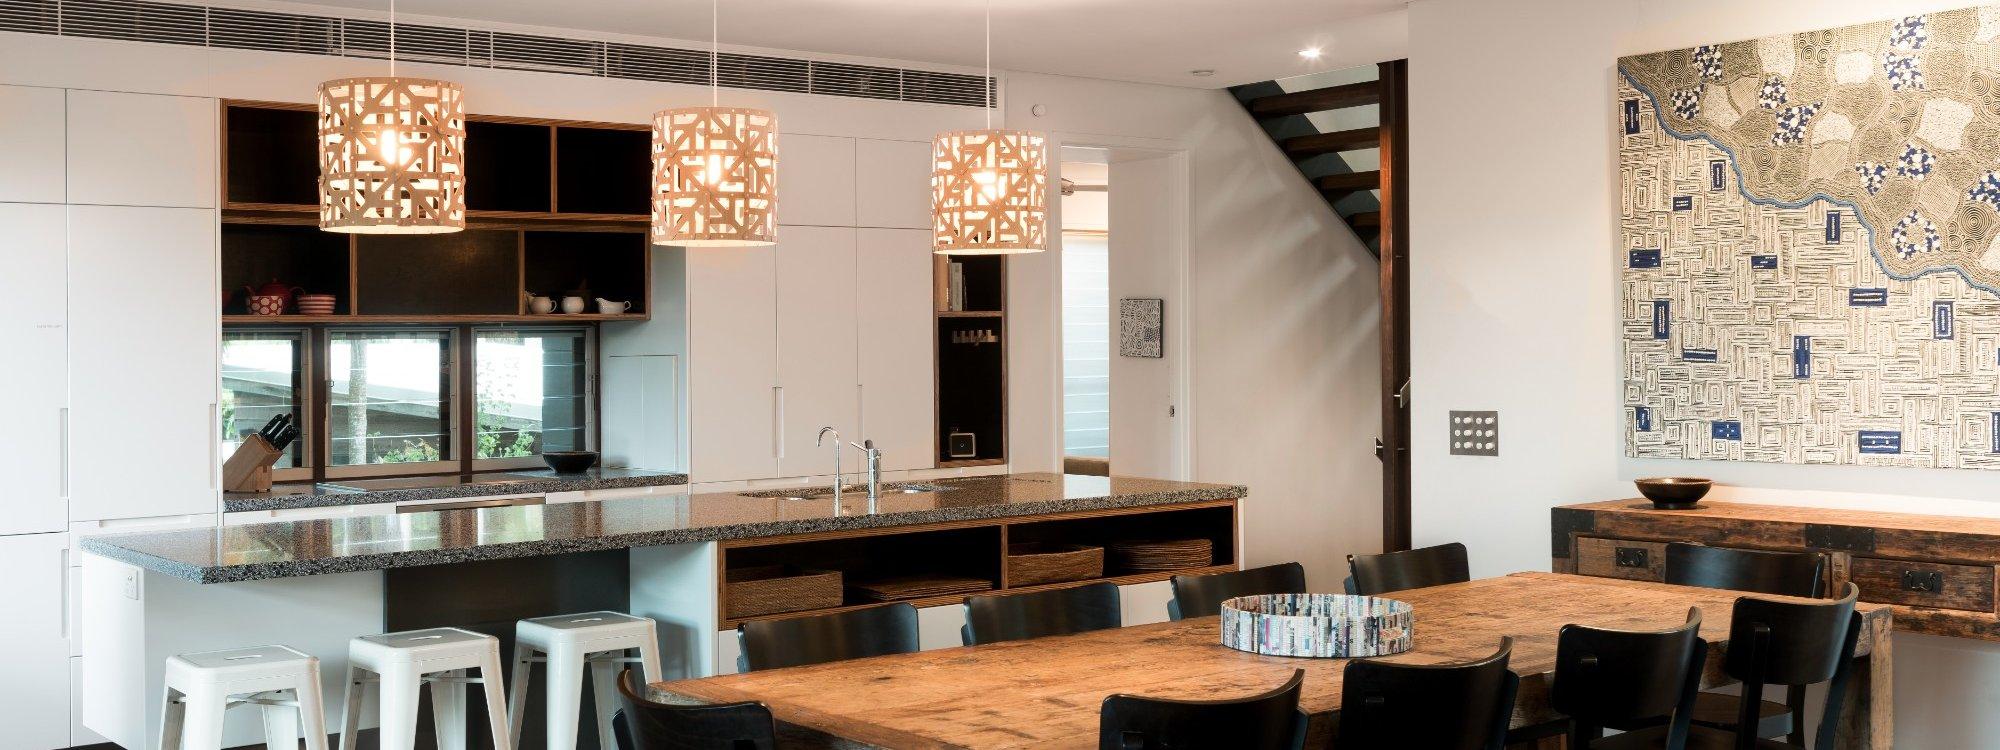 Ayana Byron Bay - kitchen and dining